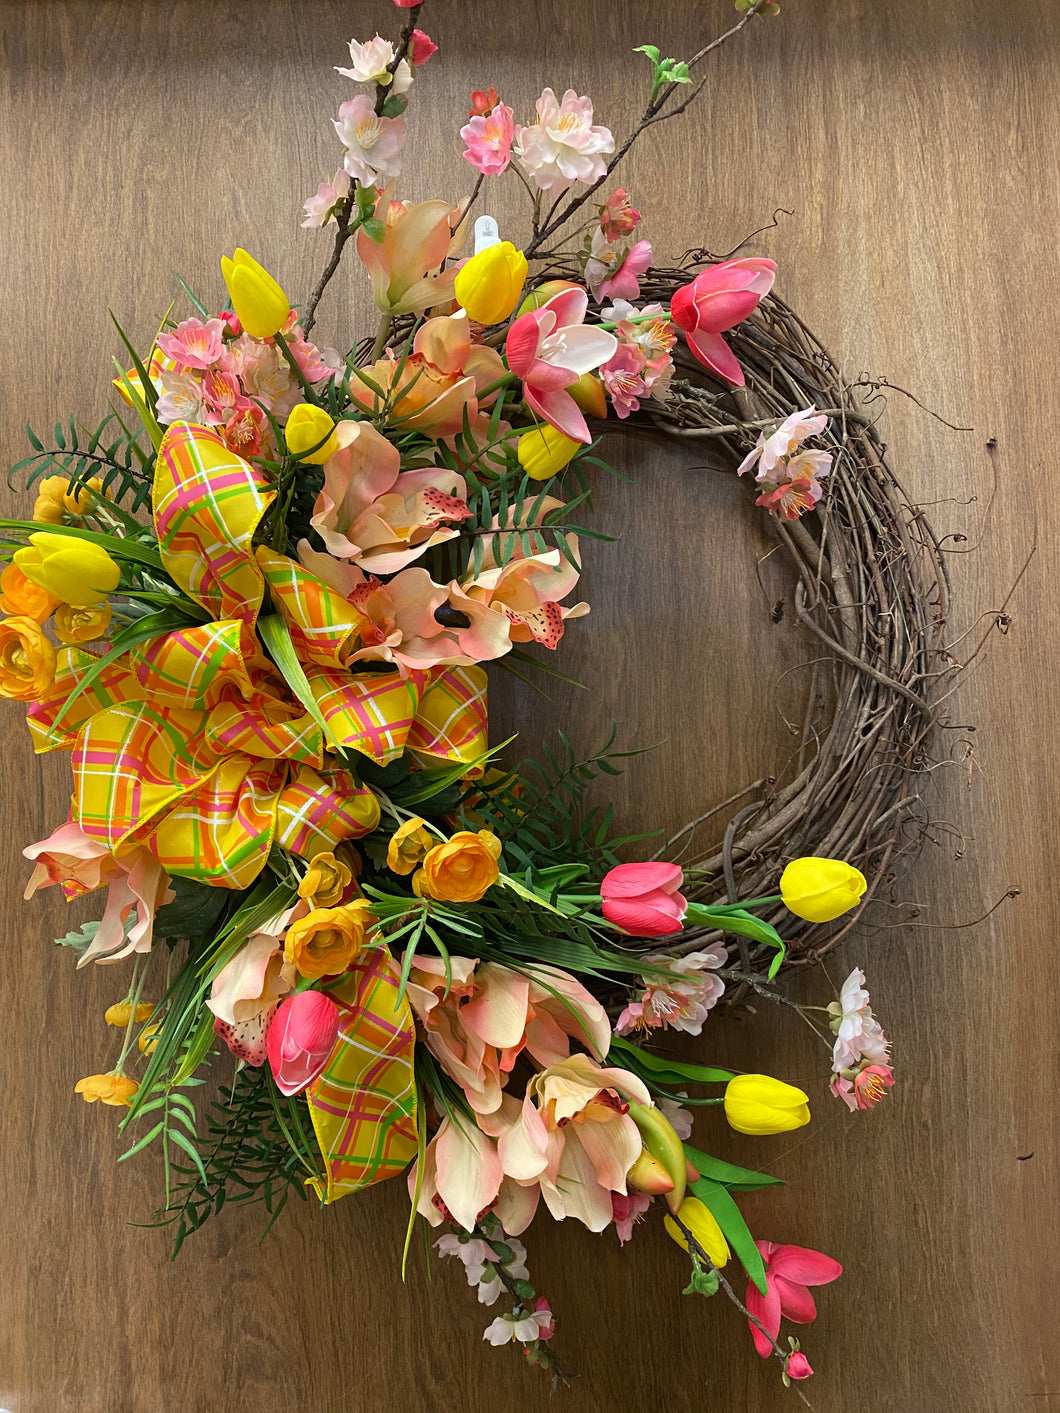 Cherry Blossoms Tulips and Fern Wreath